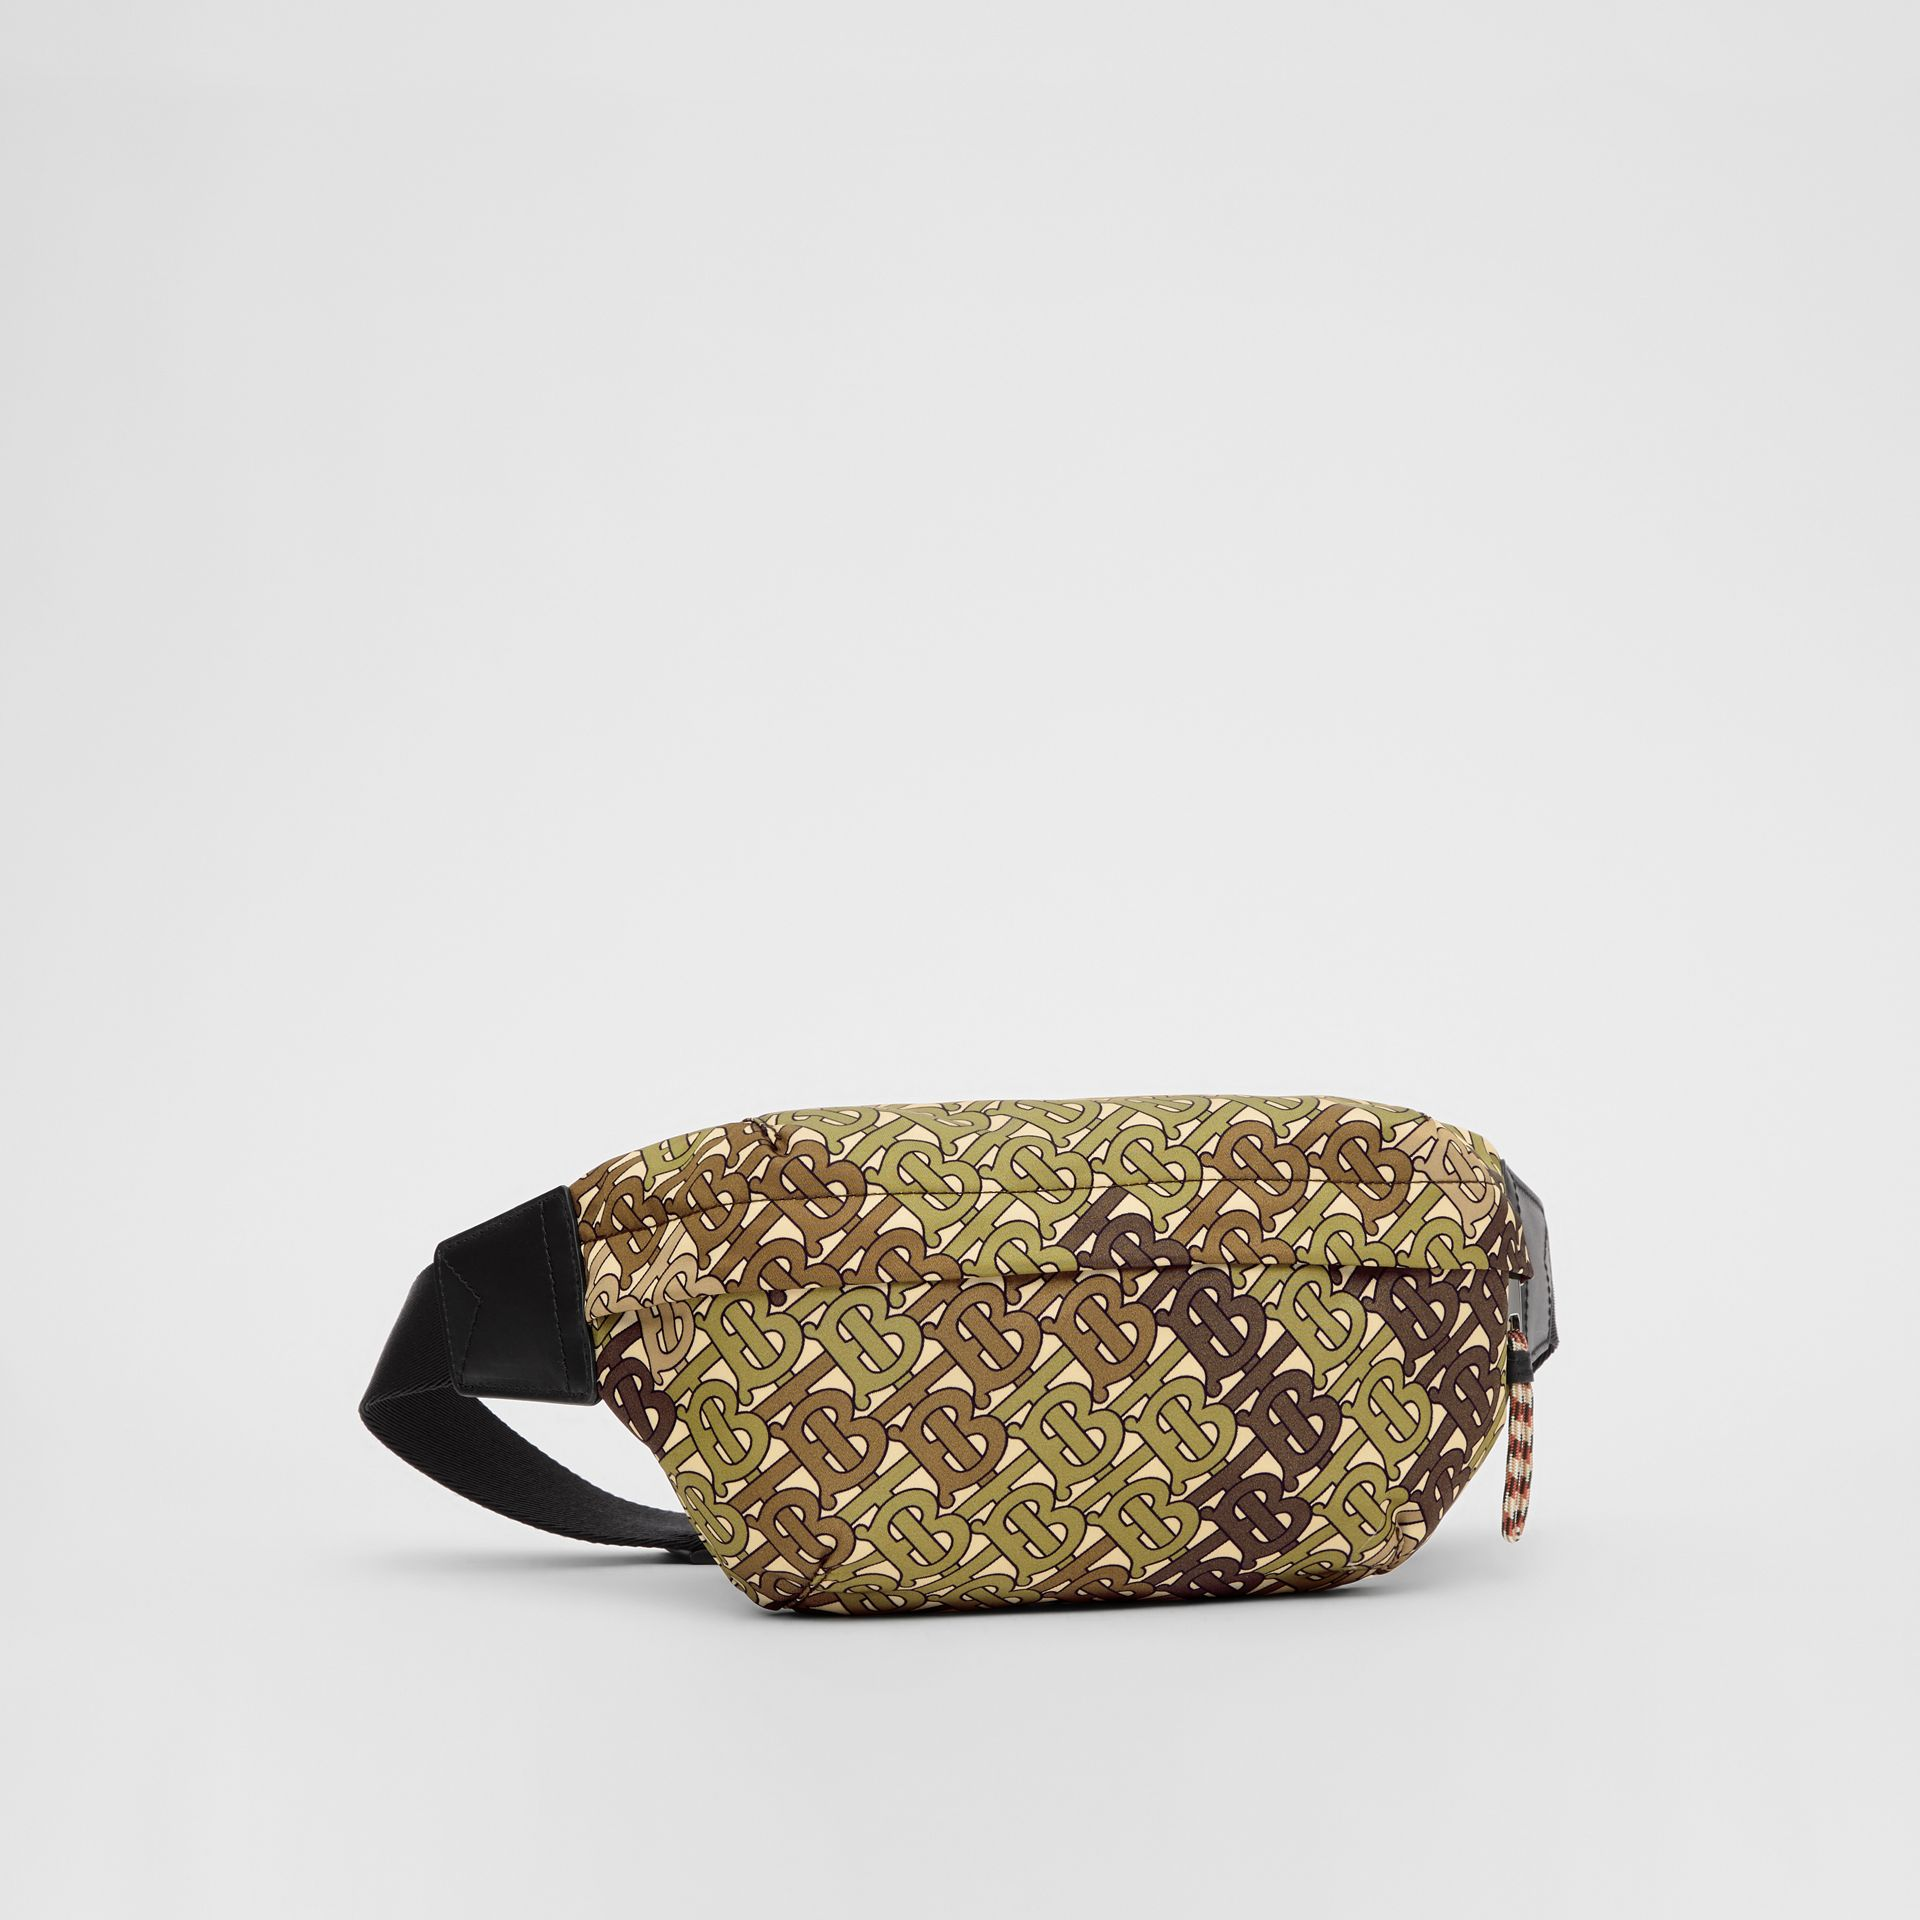 Medium Monogram Print Bum Bag in Khaki Green | Burberry - gallery image 8